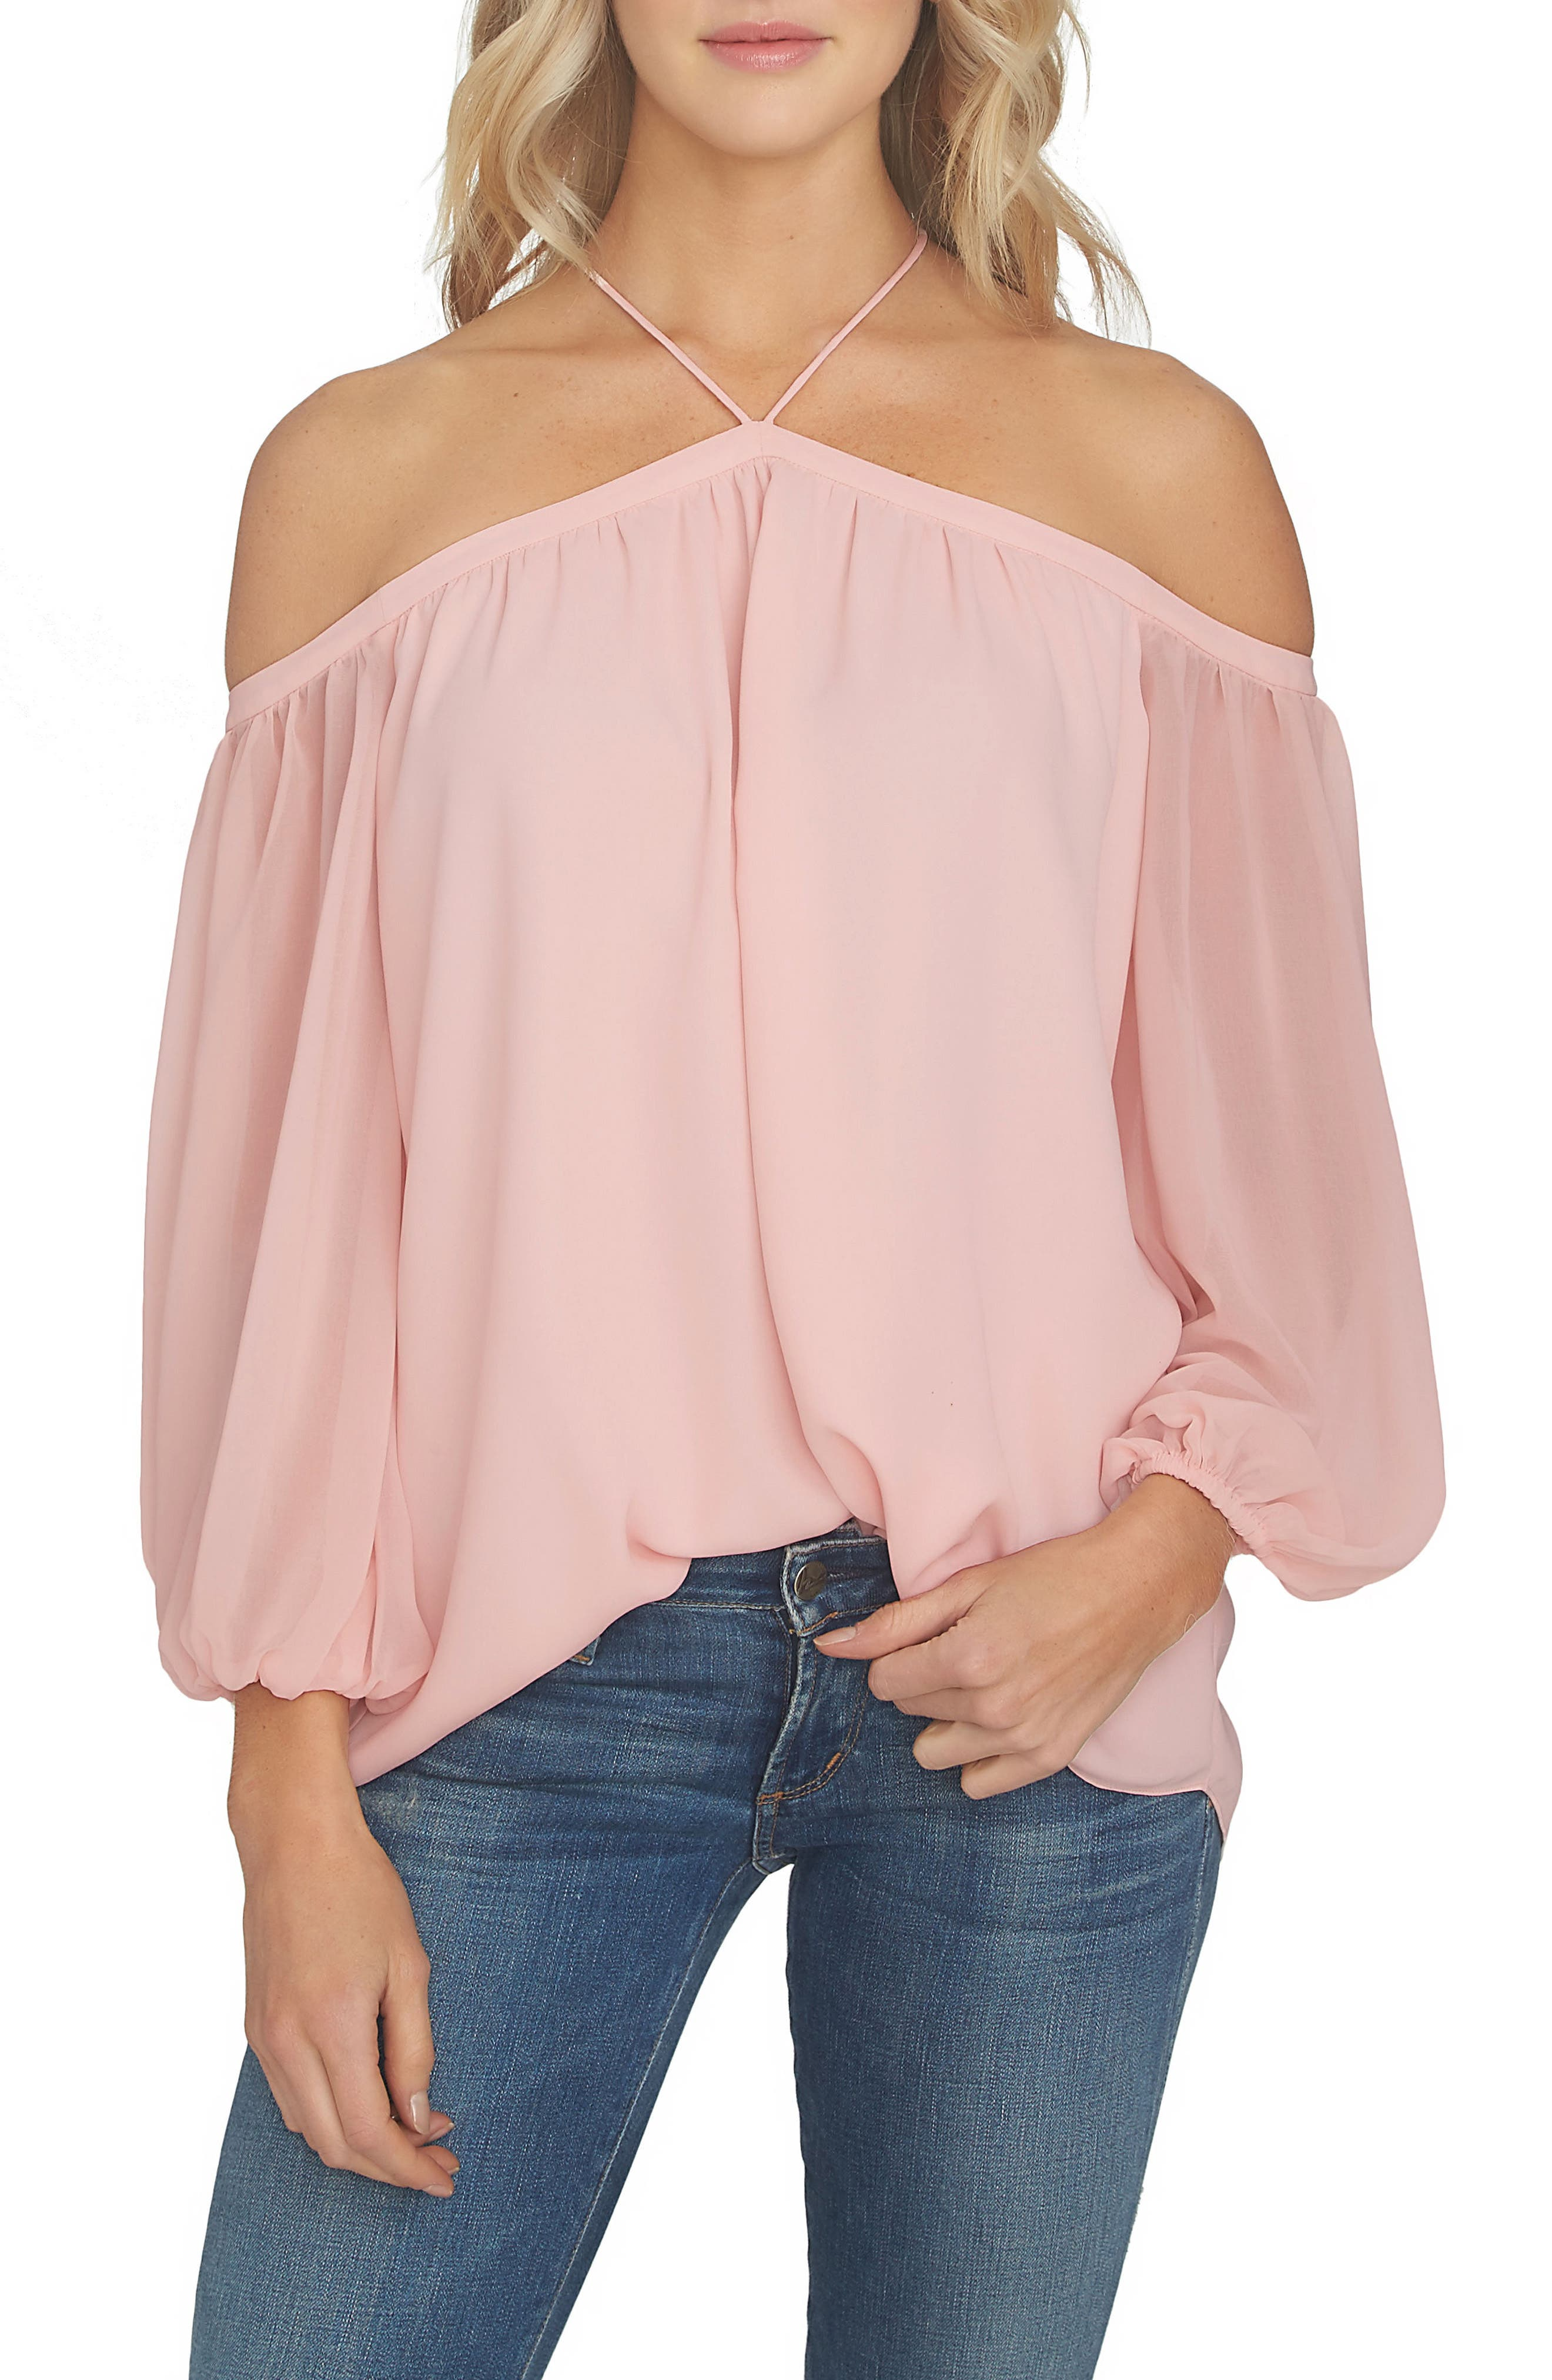 Main Image - 1.STATE Off the Shoulder Sheer Chiffon Blouse